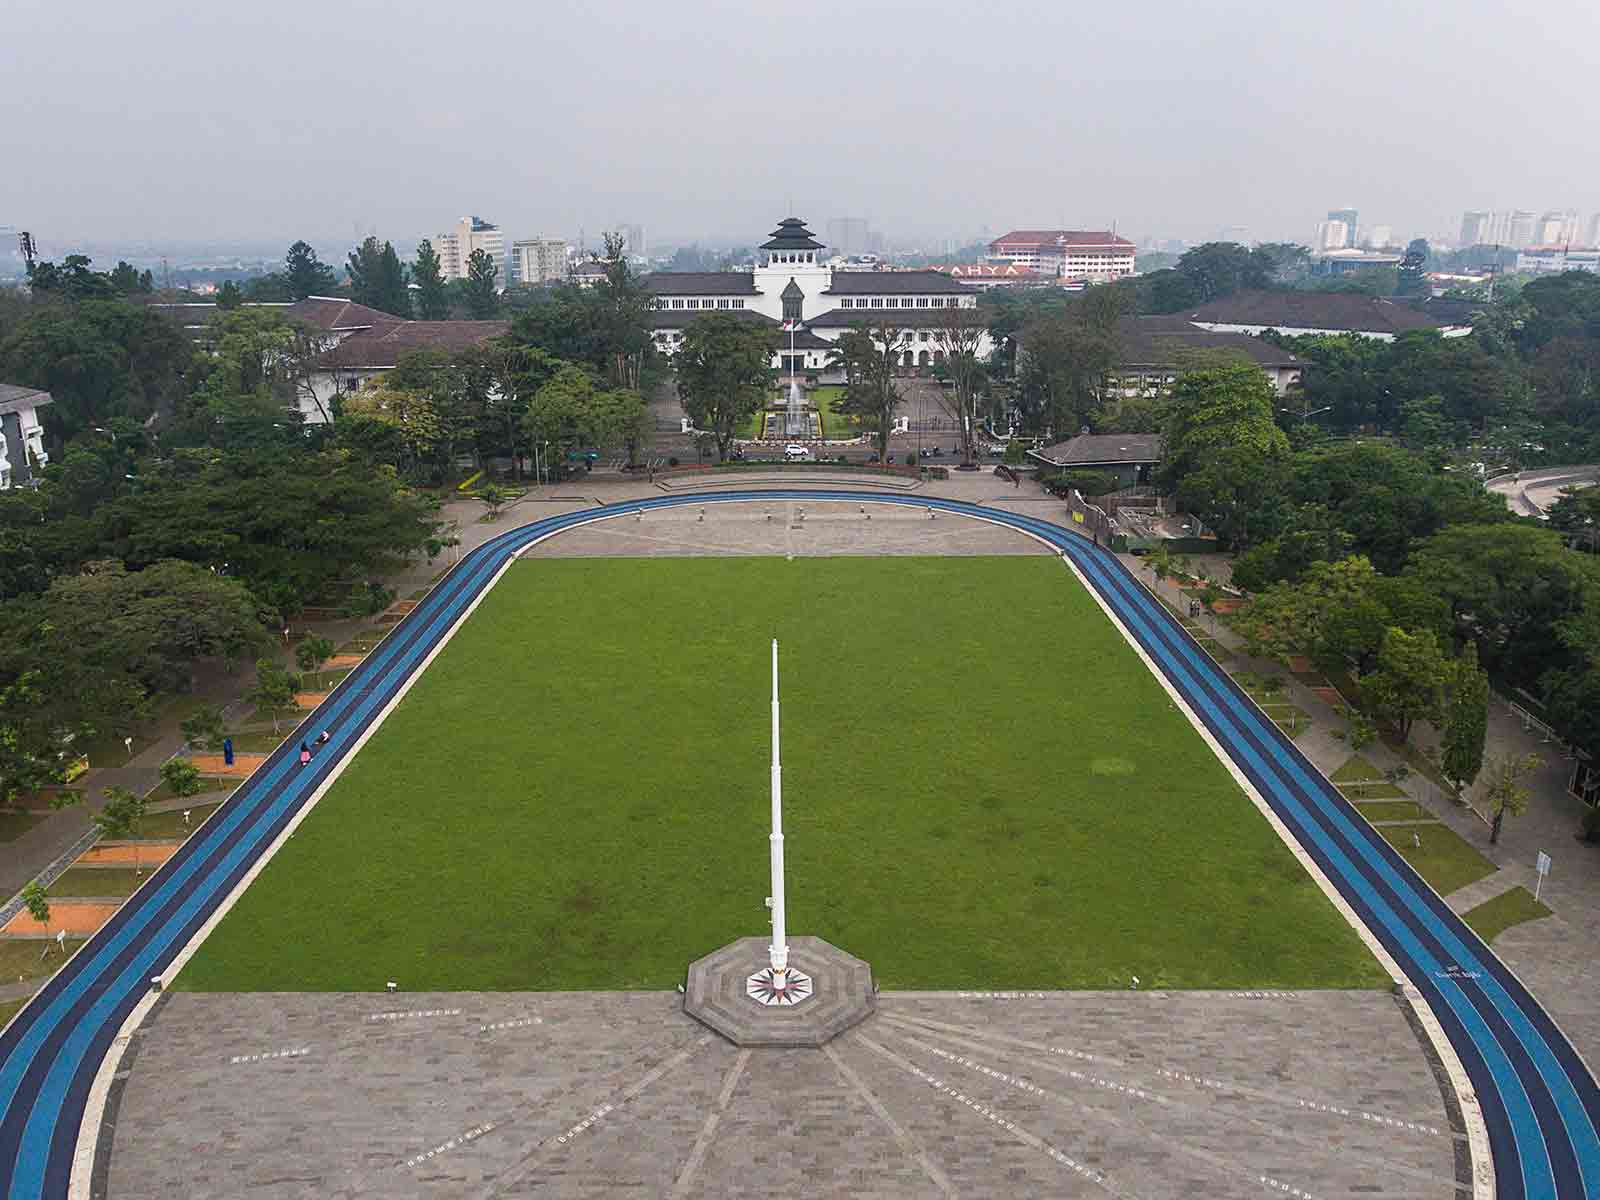 Gasibu Field Bandung - The Paris of Java